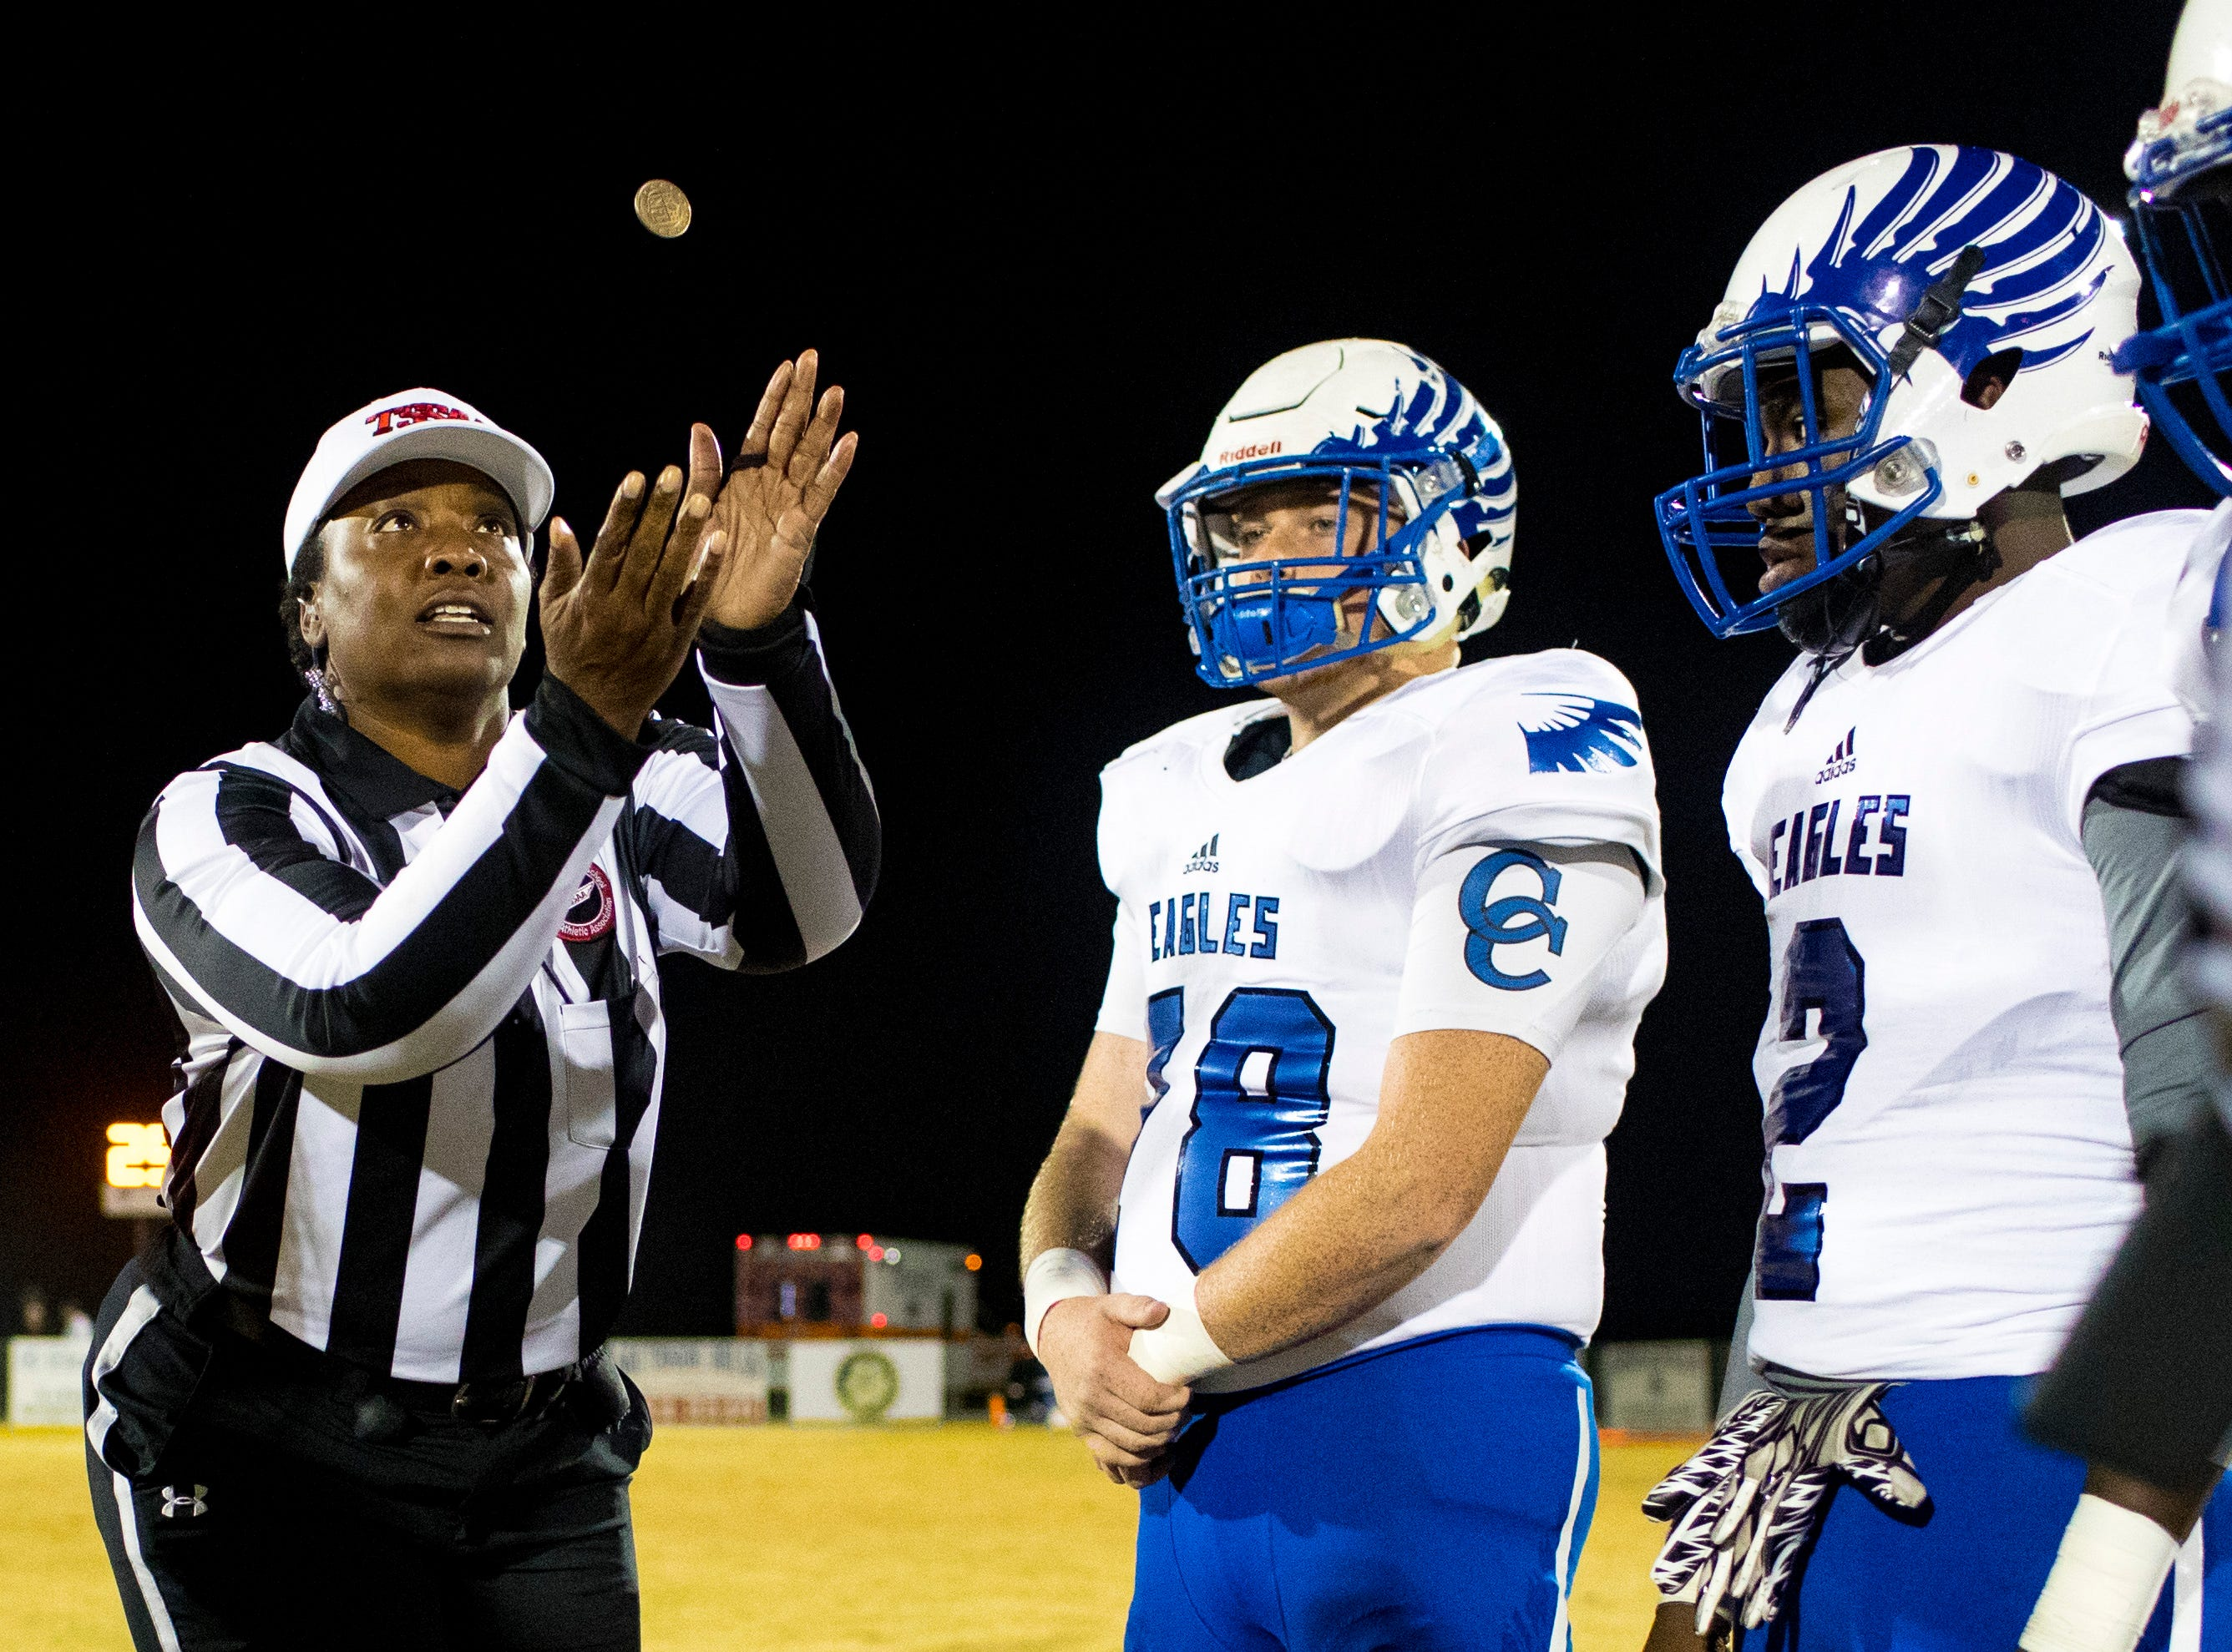 Chester County's Nick Wallis (78) calls the coin toss before Springfield's game against Chester County at Springfield High School in Springfield on Friday, Nov. 2, 2018.